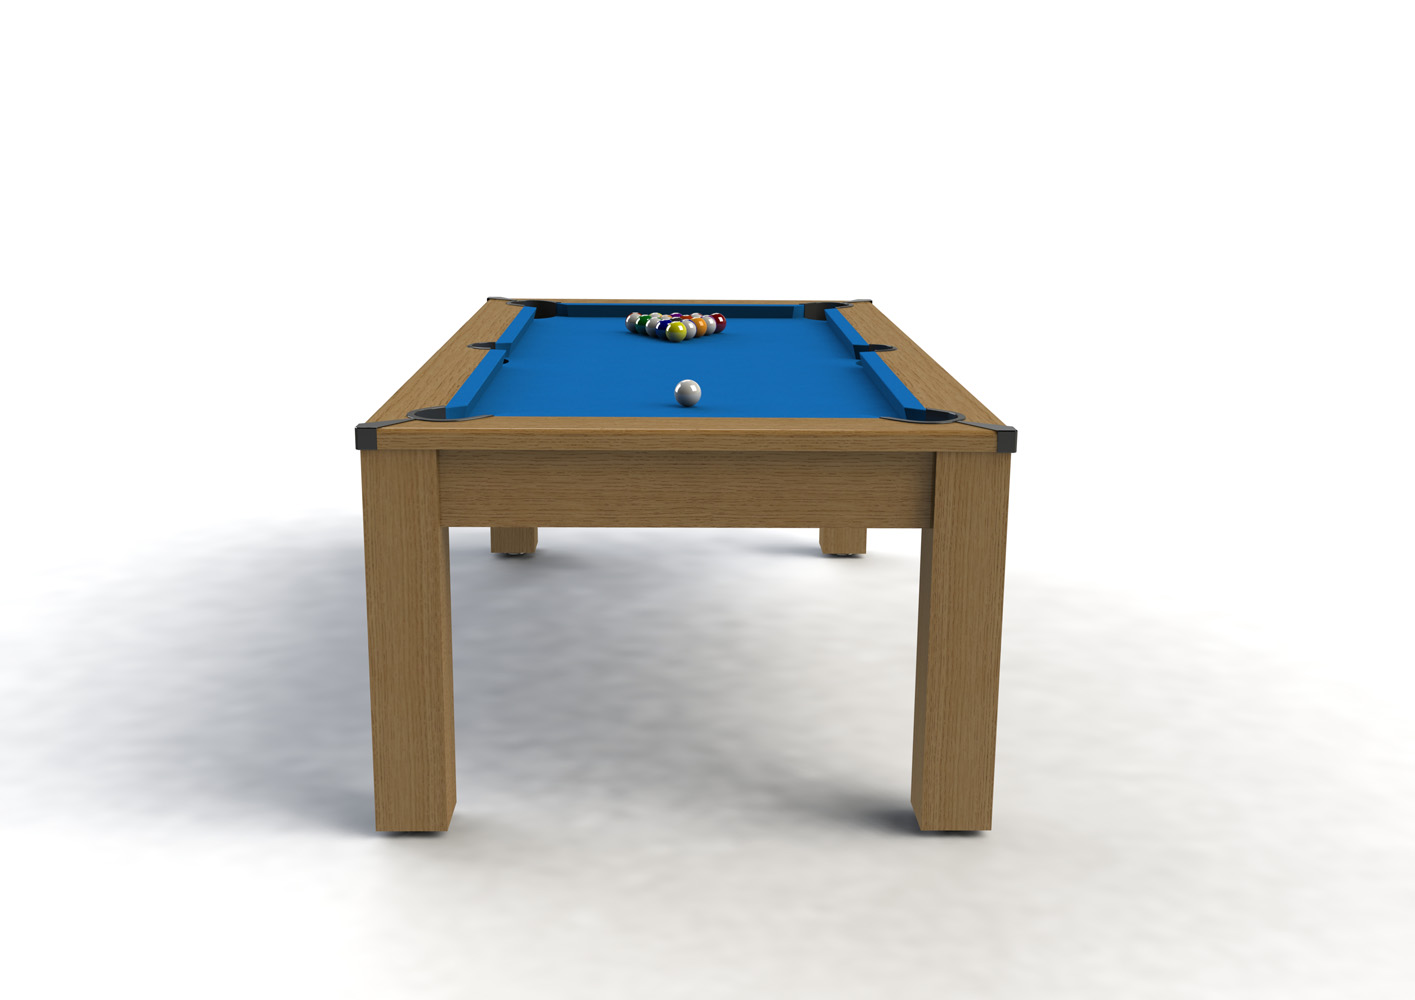 Riley Challenger Pool Table